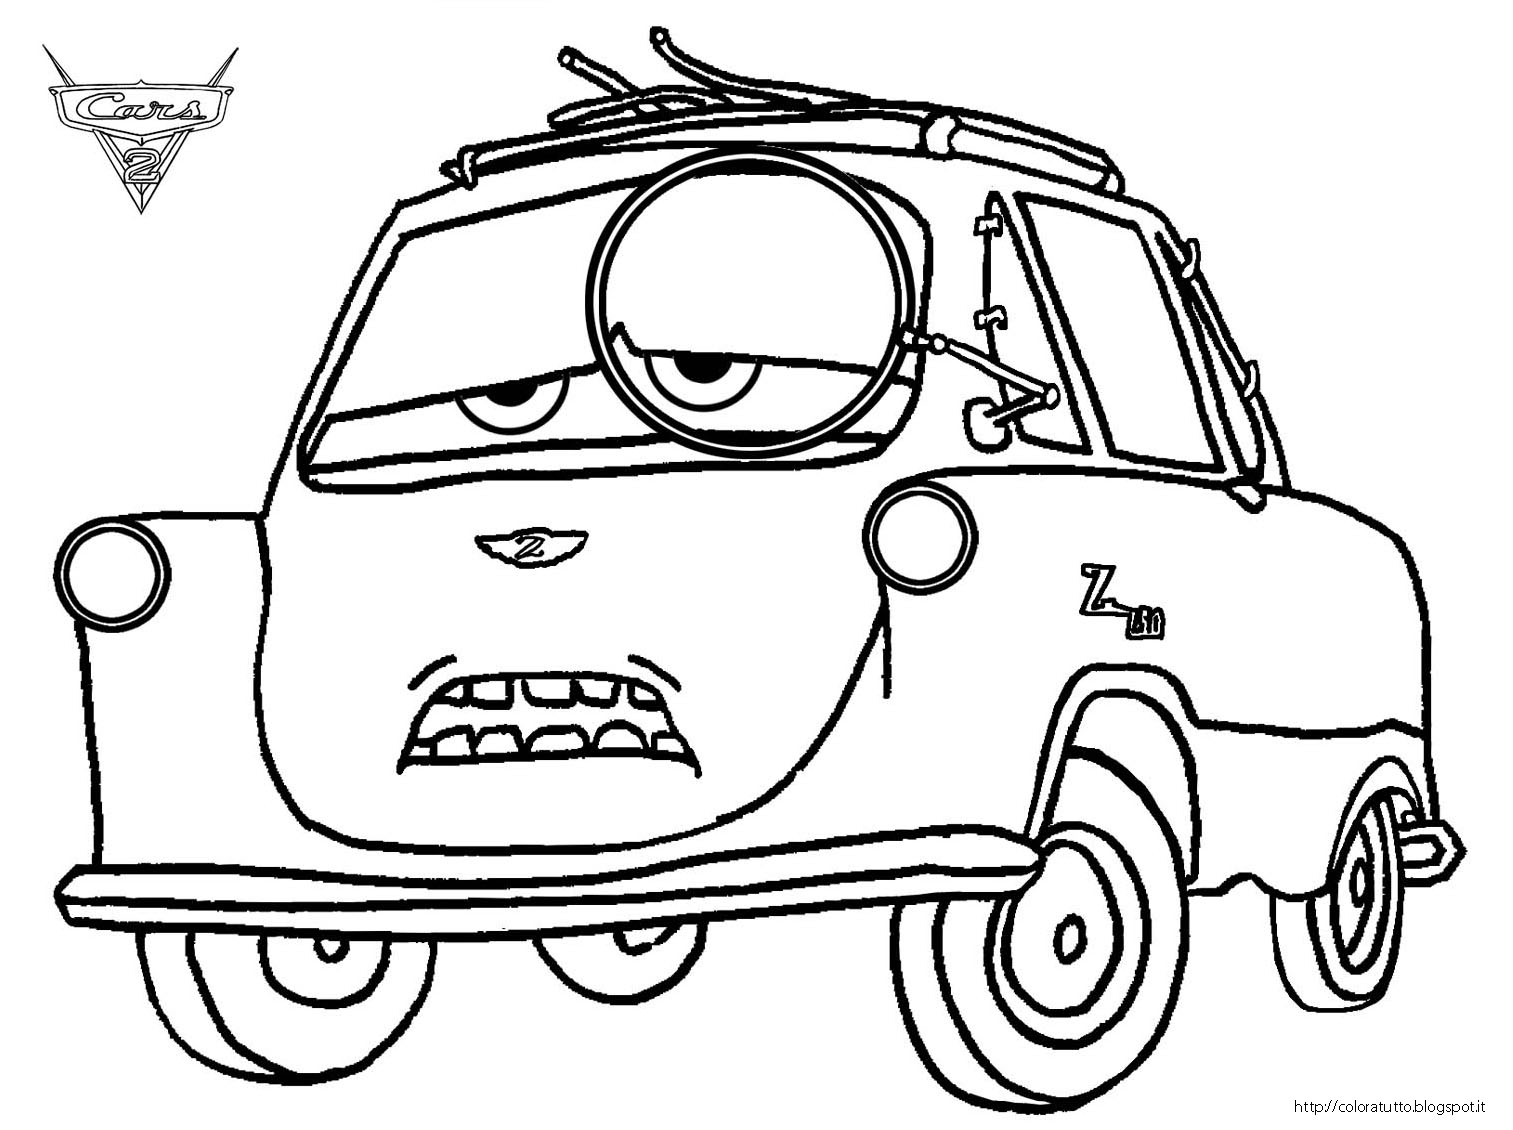 1513x1130 Cars Coloring Pages Cars Professor Z Coloring Pages Kids